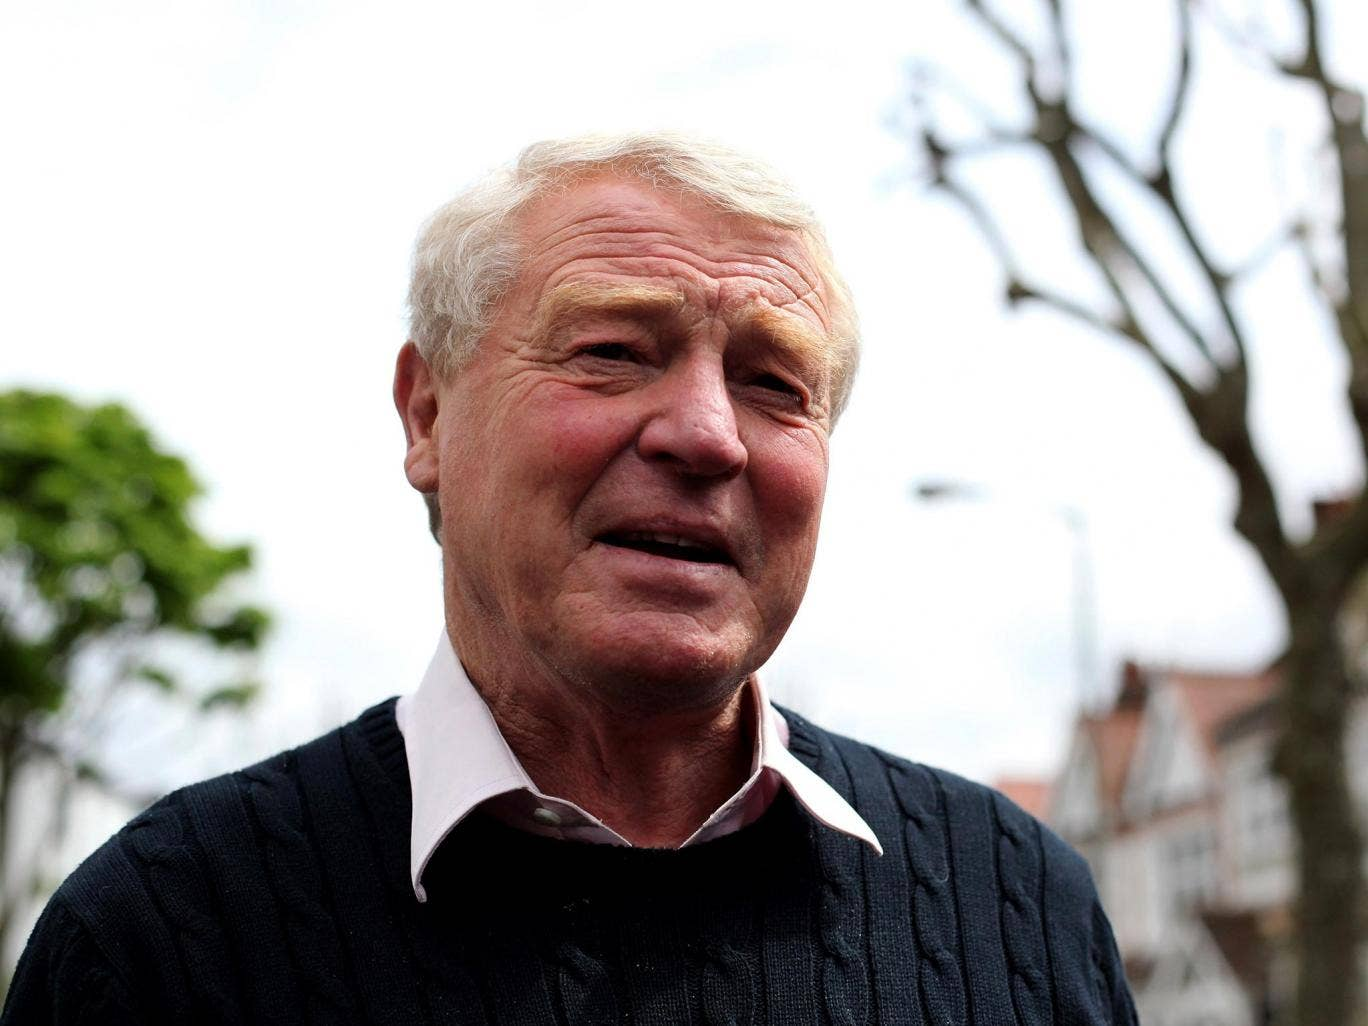 Former Liberal Democrat party leader, Paddy Ashdown